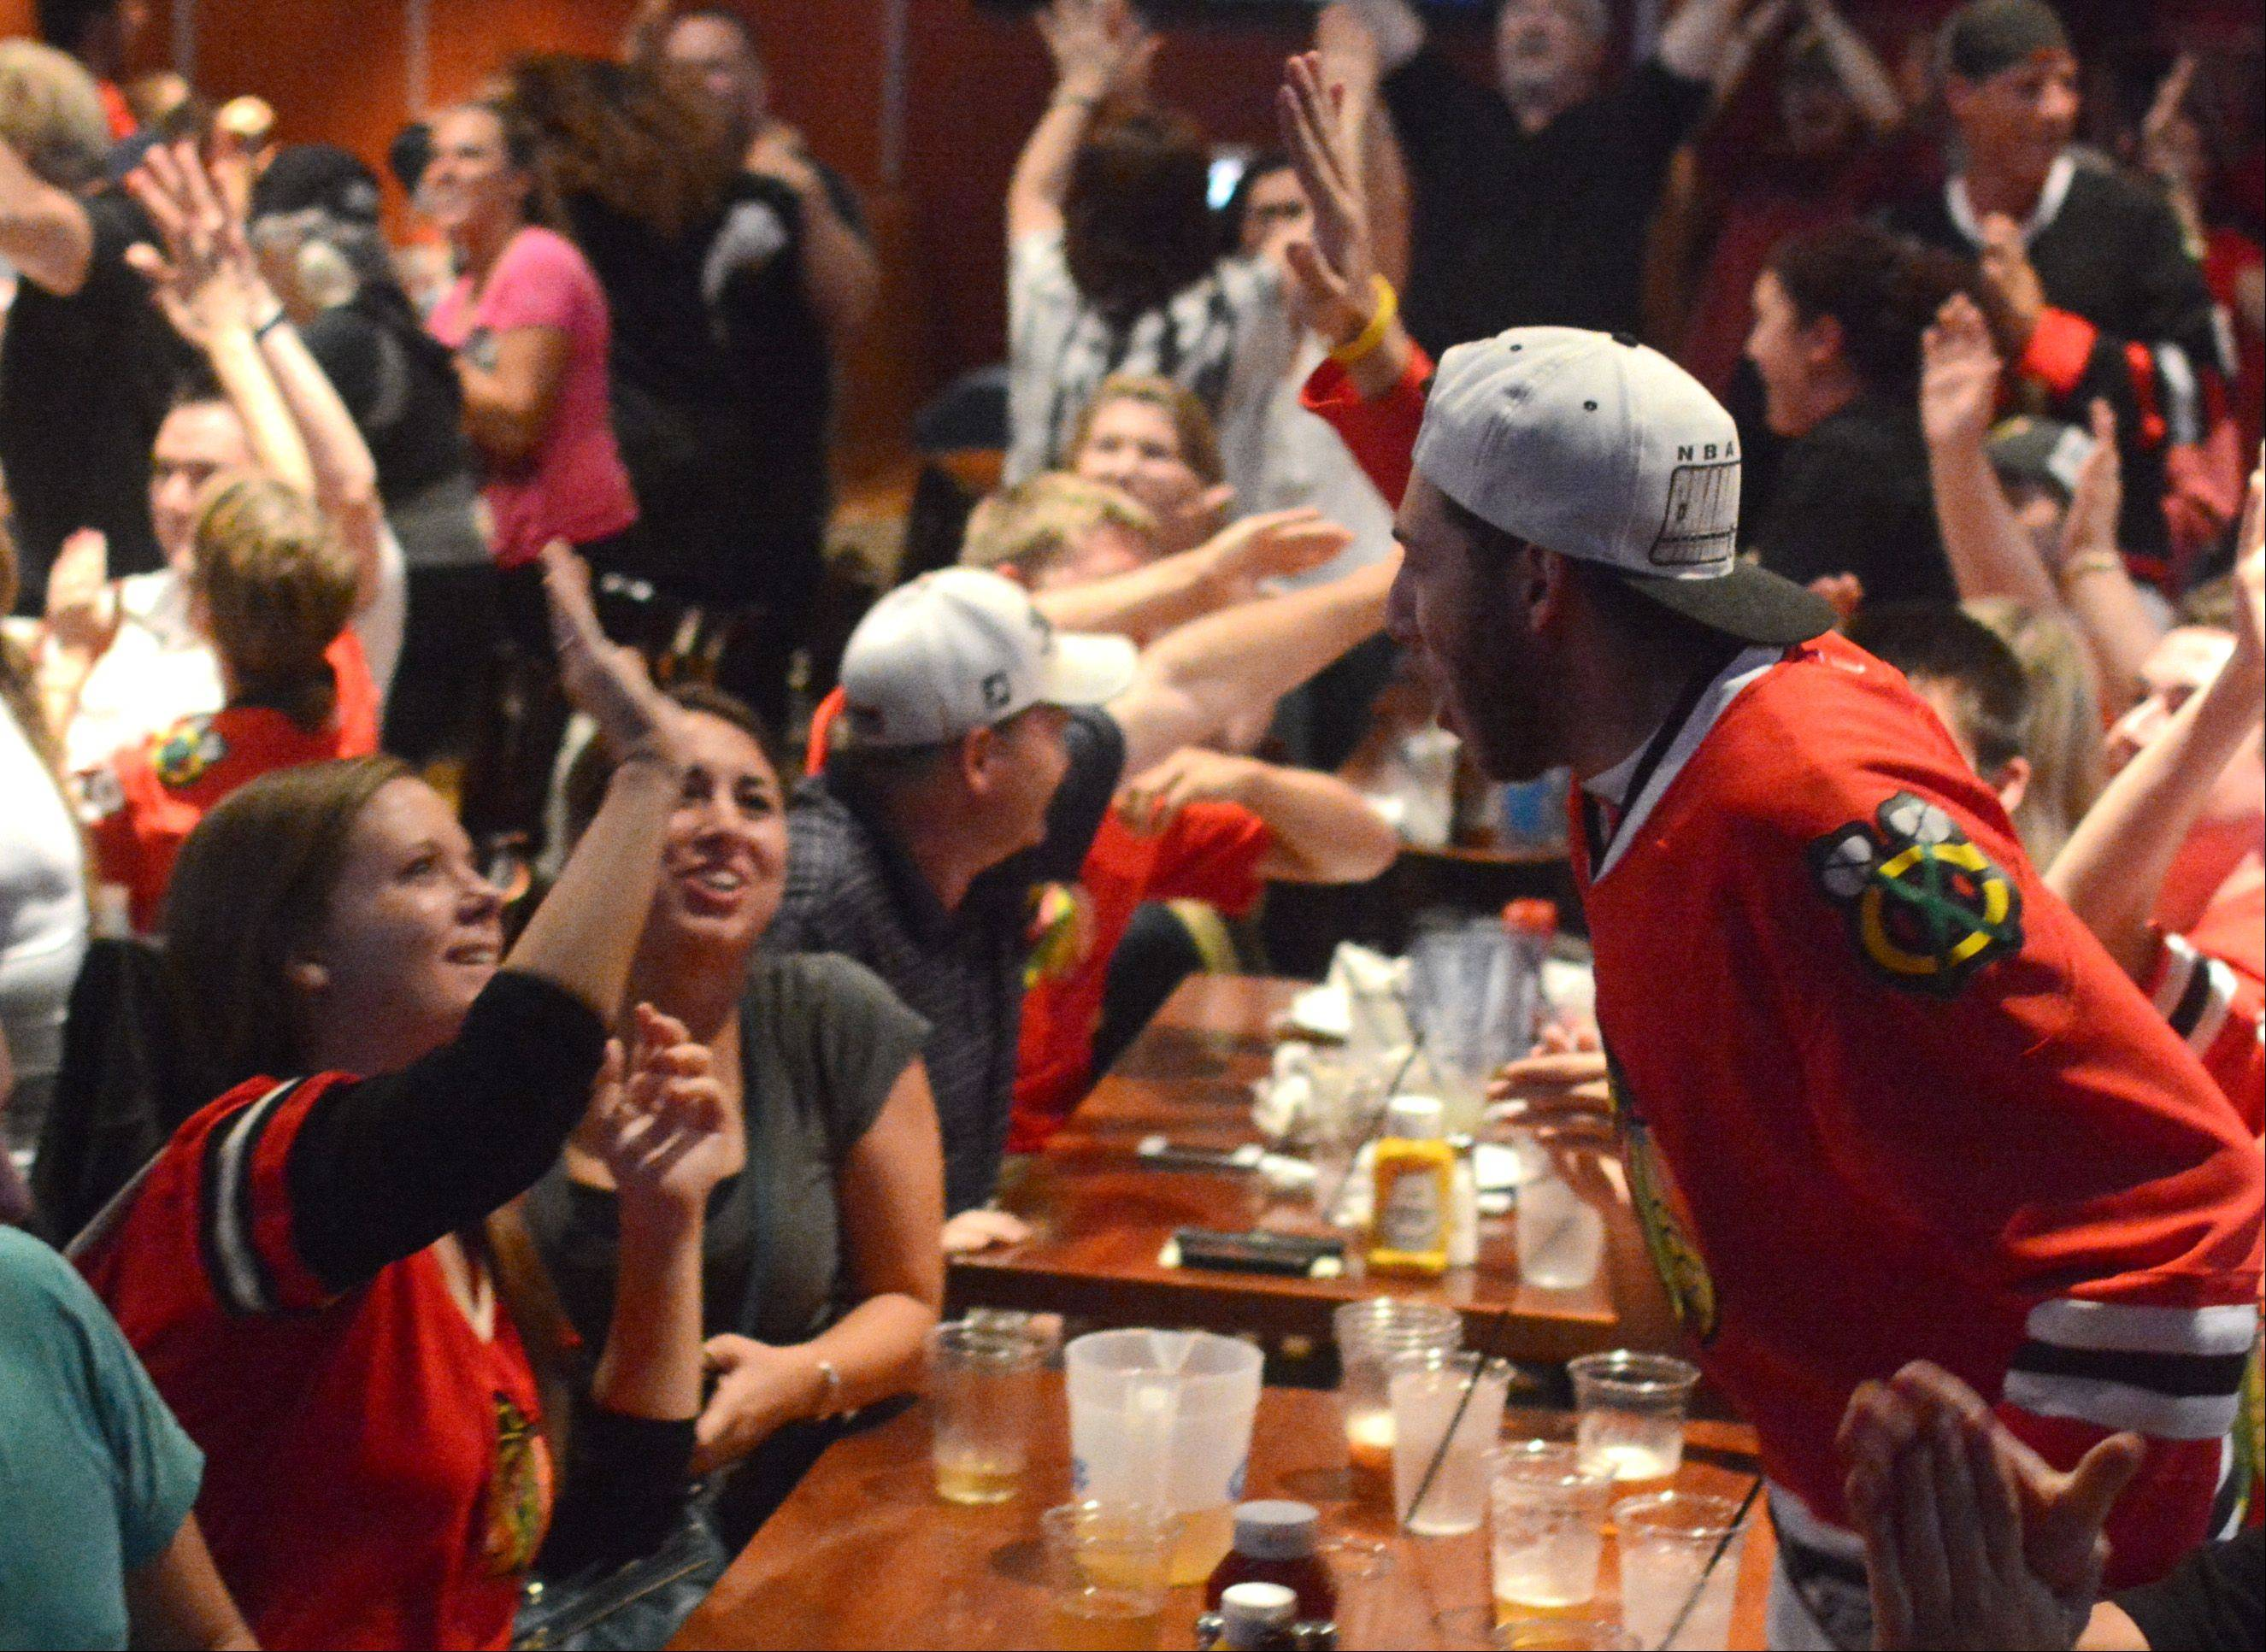 Nate Richards, right, of Buffalo Grove high-fives Jorie O'Neill of Wheeling at the Cubby Bear North in Lincolnshire on Monday as the Blackhawks tie up Game 6 of the Stanley Cup Finals.